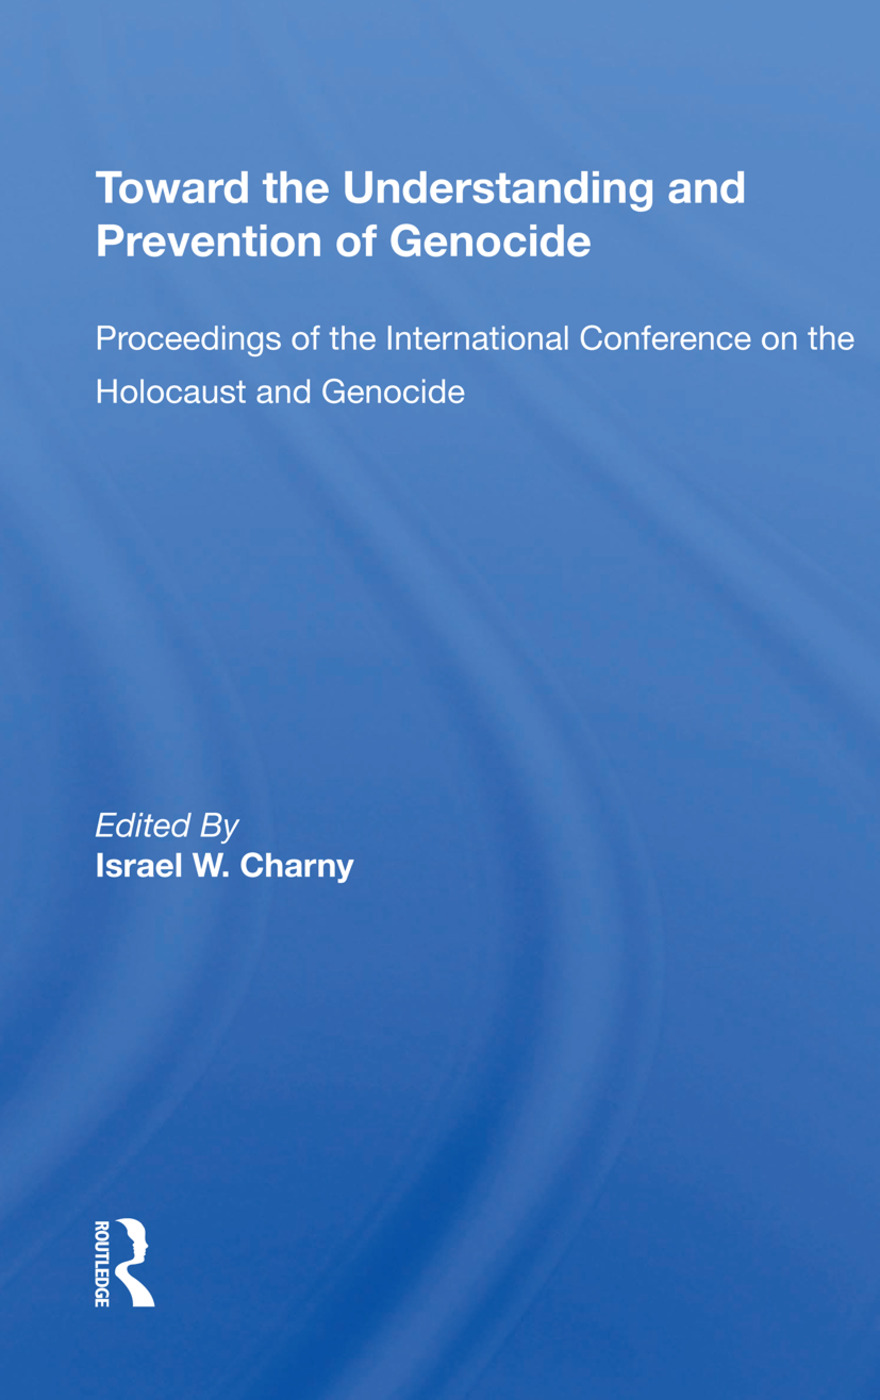 Toward The Understanding And Prevention Of Genocide: Proceedings Of The International Conference On The Holocaust And Genocide, 1st Edition (Hardback) book cover